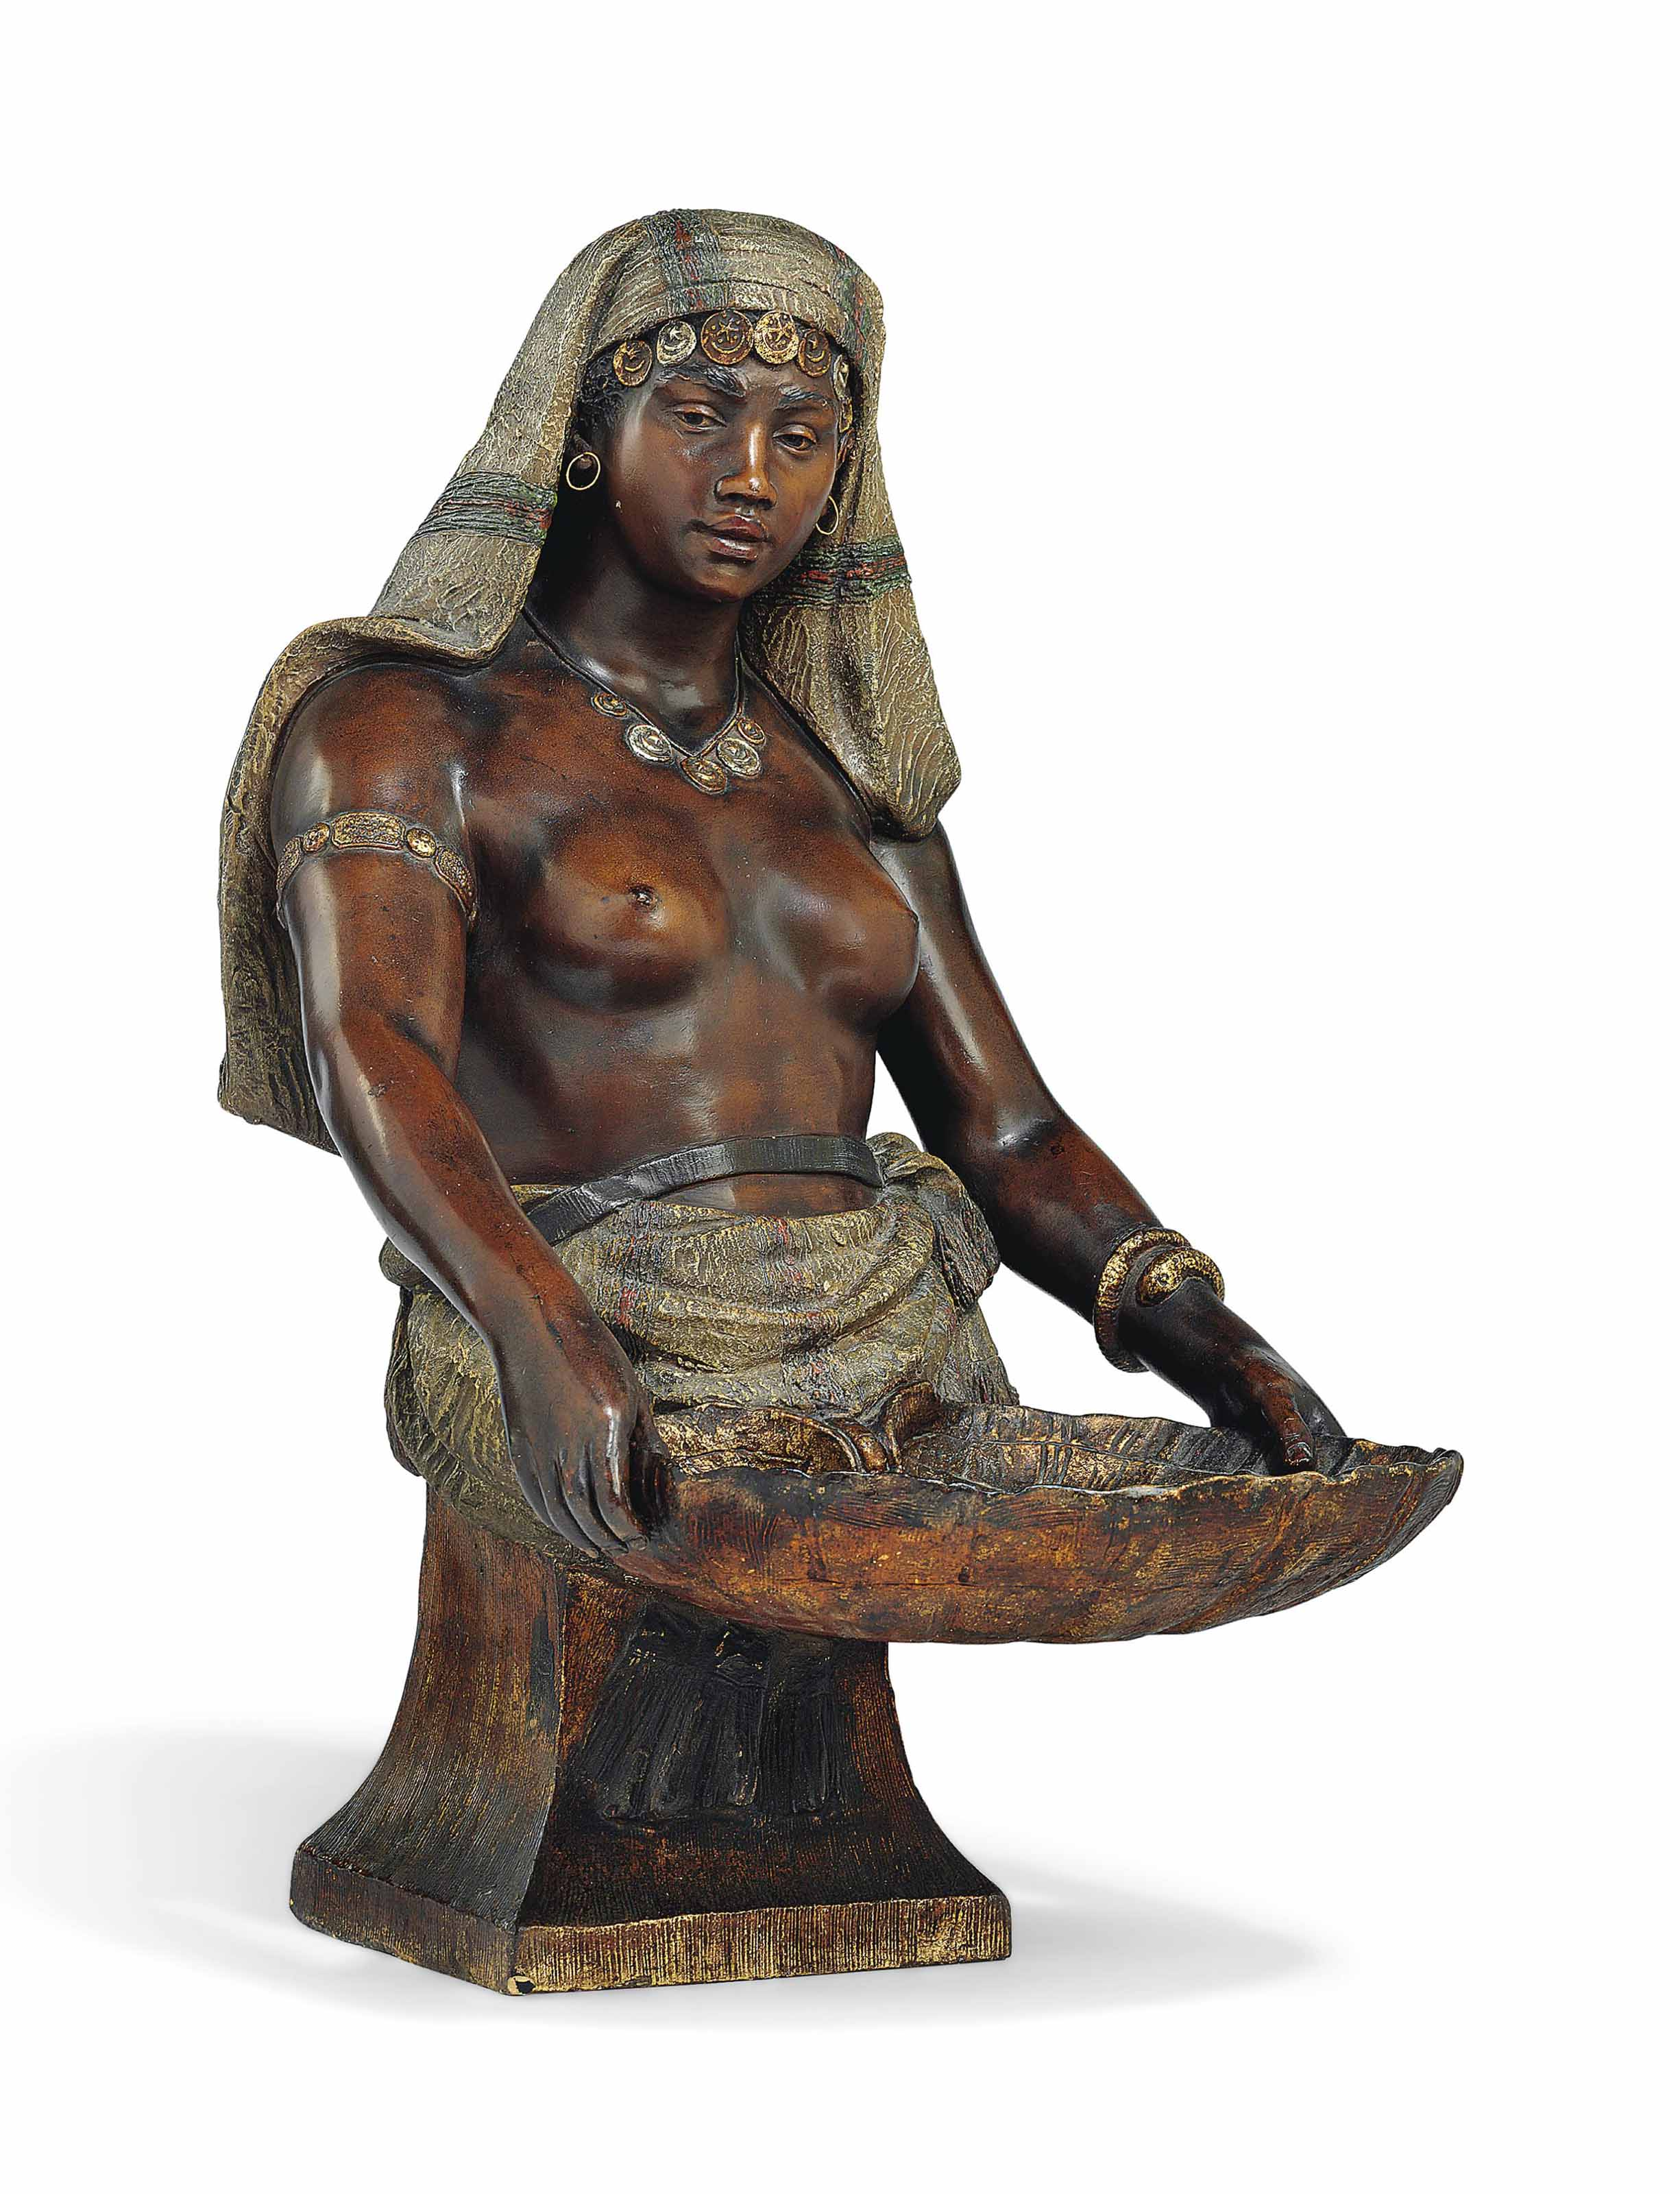 AN AUSTRIAN POLYCHROME-PAINTED TERRACOTTA BUST OF A NUBIAN GIRL HOLDING A SHELL DISH